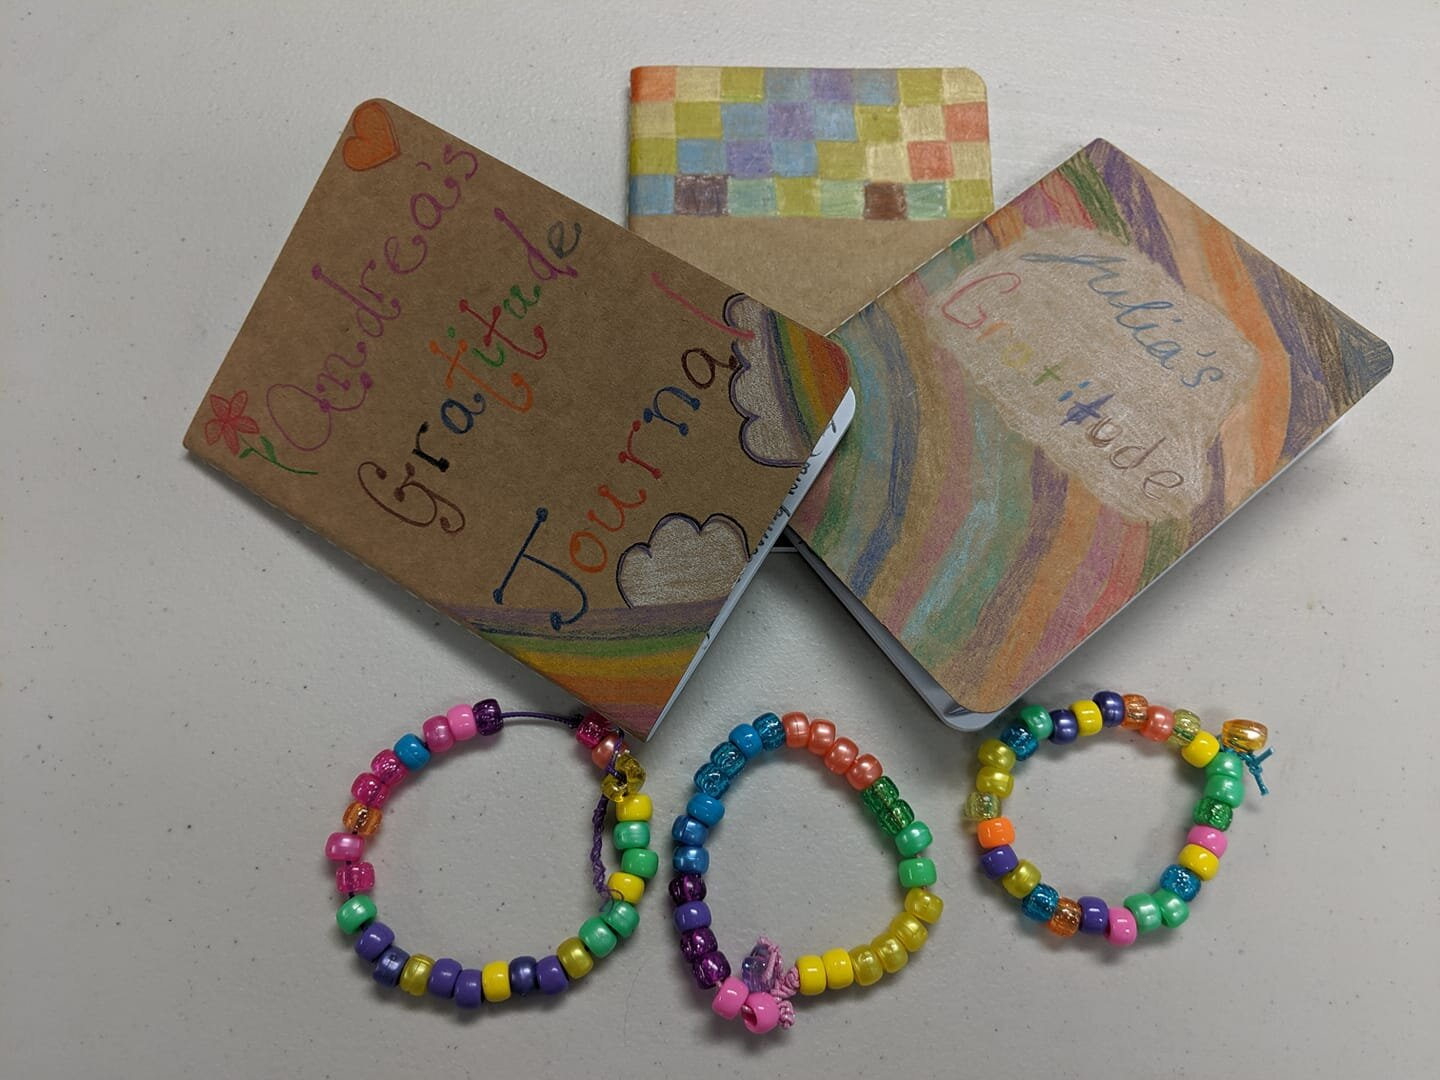 - Today, in Crafty & Calm Kids Relaxation Series (ages 9-13) we made these beautiful gratitude journals and meditation bracelets! Next week, we will be creating peace rocks and positivity cards.There's still space for your child to join us on 10/12 and 10/19!Register: www.shiningkidsyoga.com/workshops